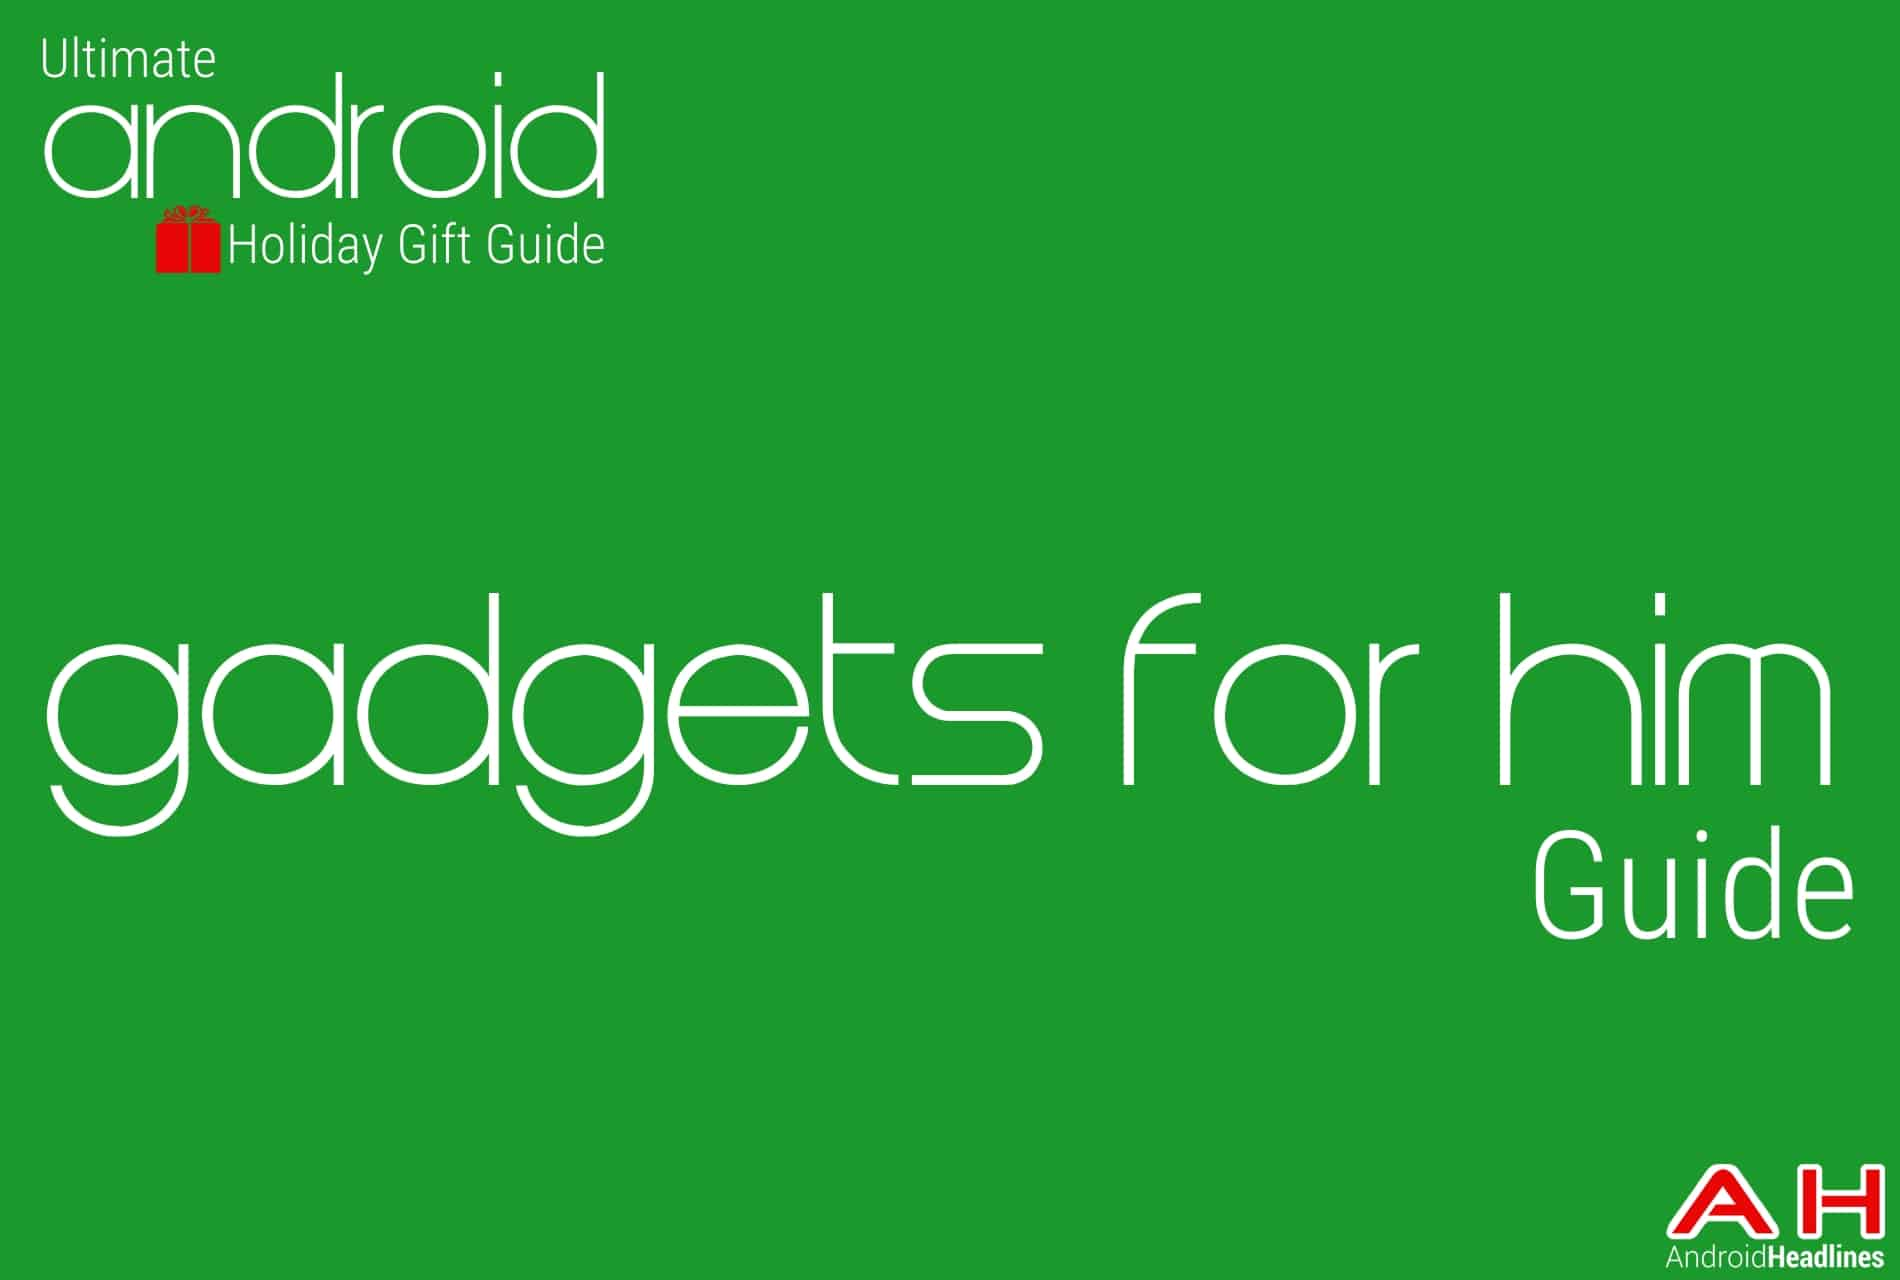 Best Android gadgets for him Guide - Android Holiday Gift Guide Top 10